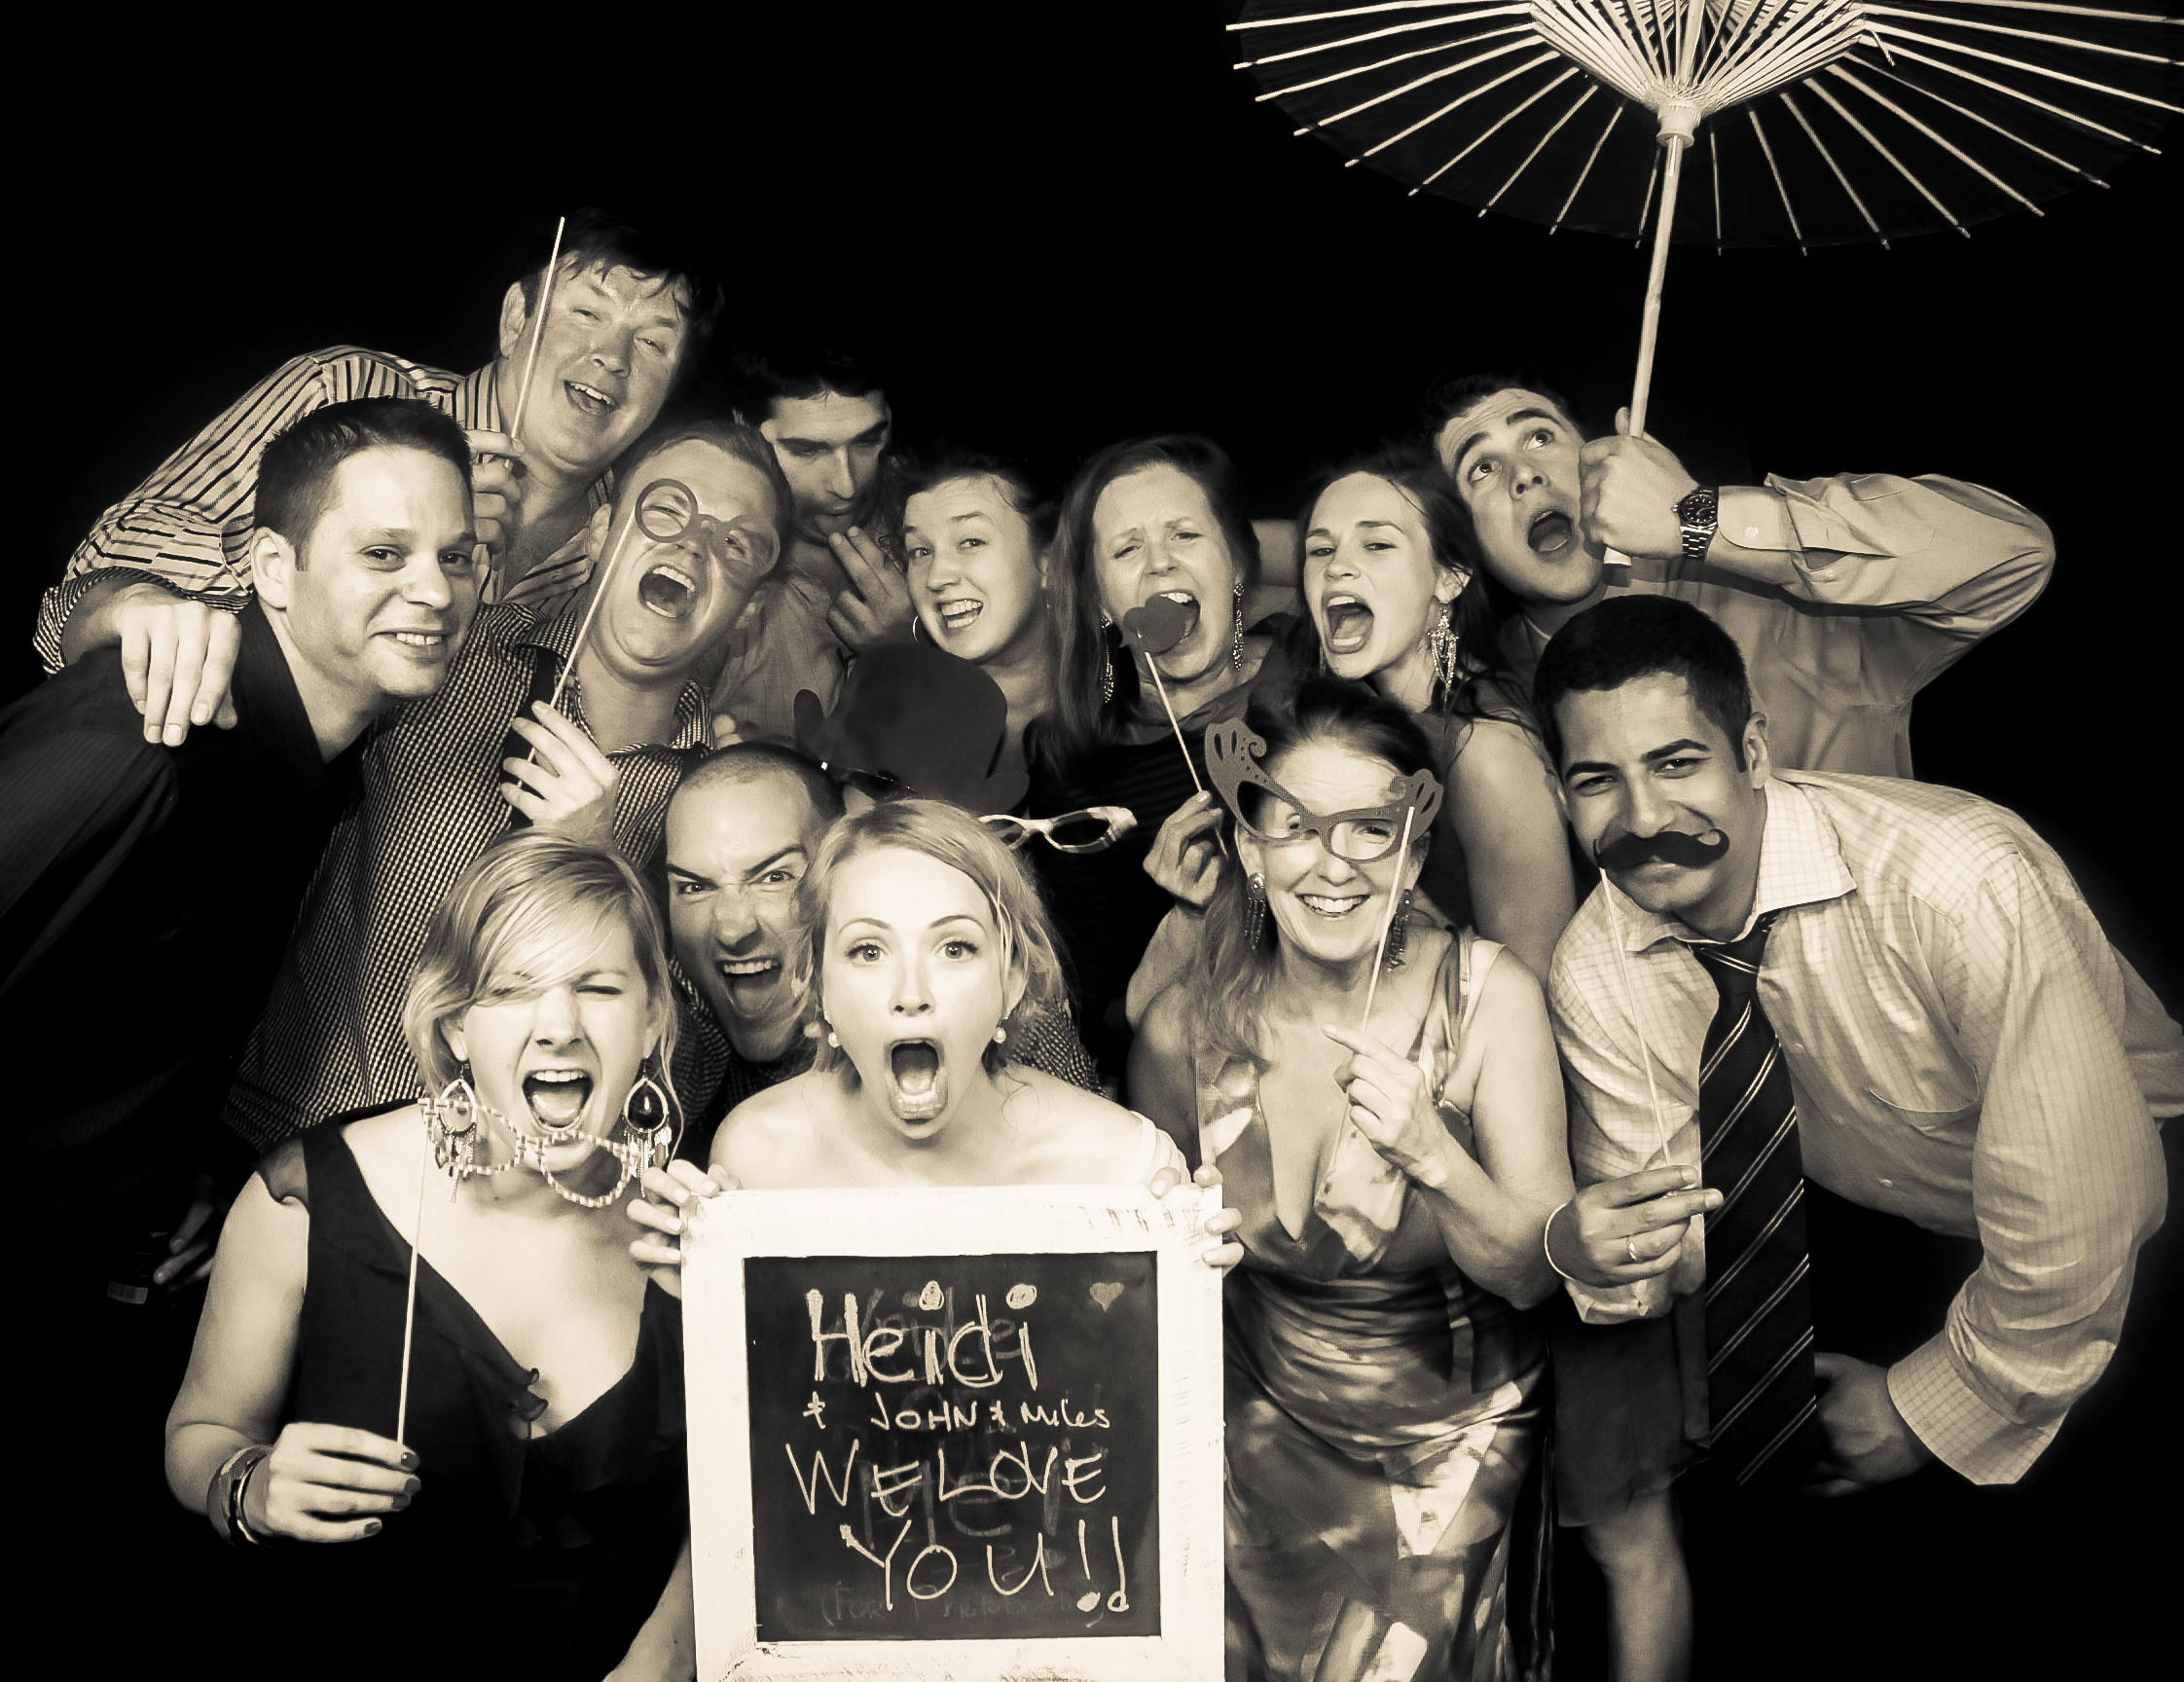 scott roth events top photo booth photos 2013 7.jpg